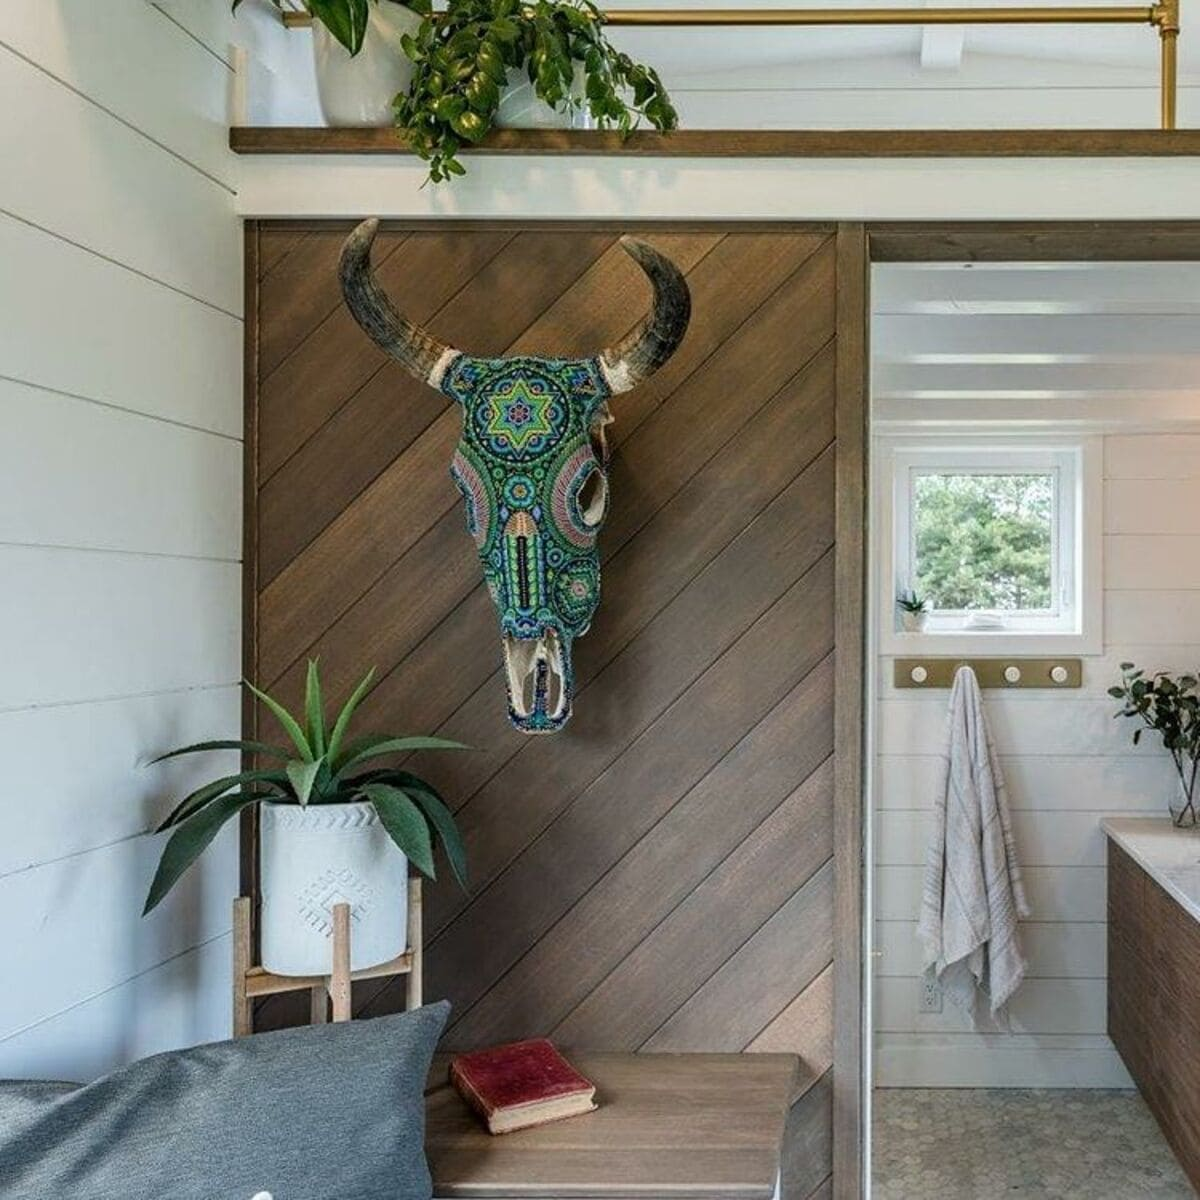 magnolia tiny house 15 1 - Tiny house serves as family holiday home and retirement investment